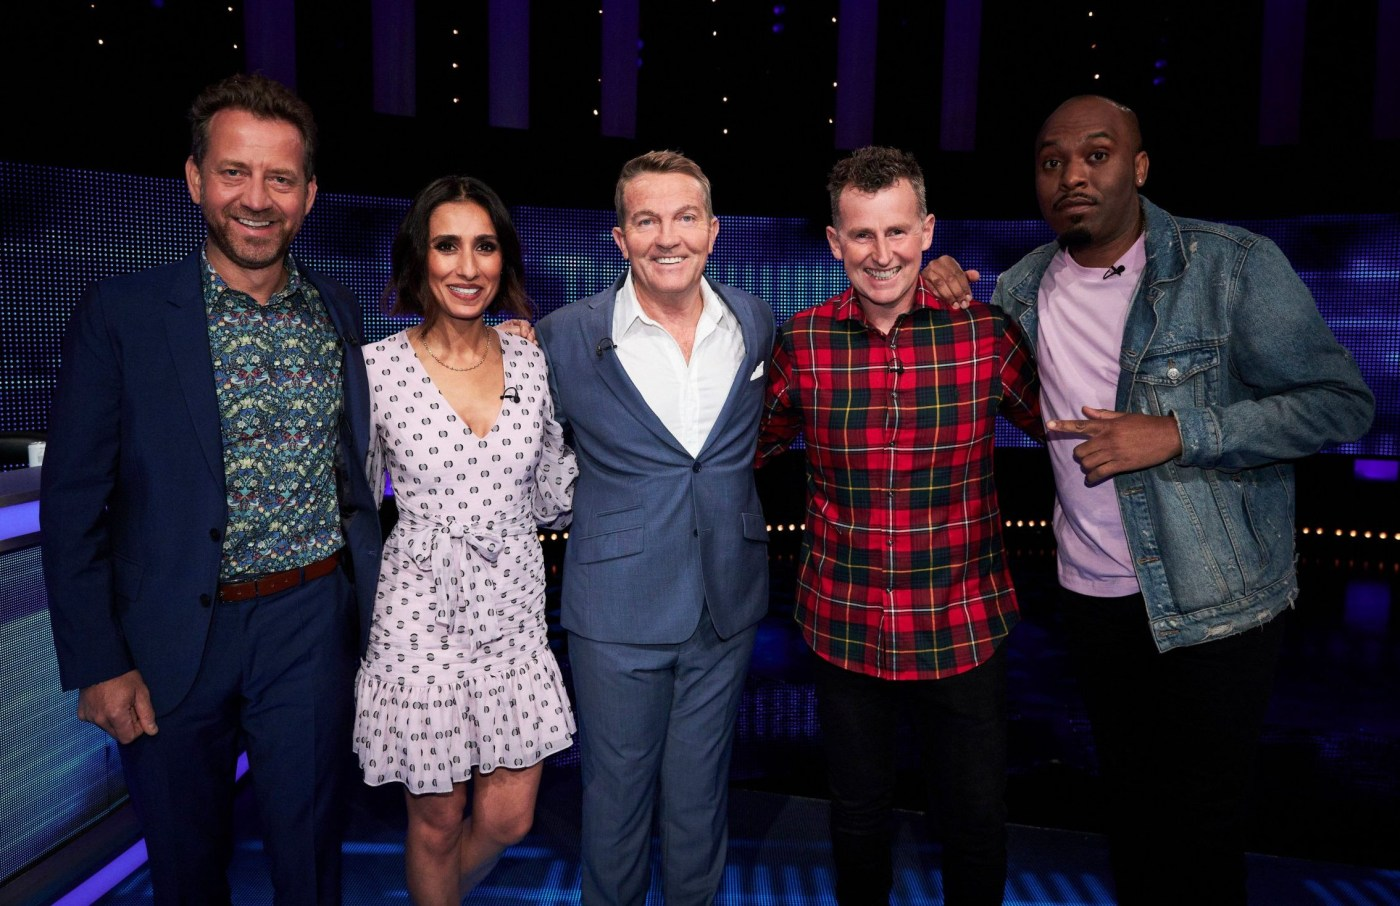 Editorial use only Mandatory Credit: Photo by ITV/REX (10944394d) (L-R) Mark Pougatch, Anita Rani, Bradley Walsh, Nigel Owens and Dane Baptiste 'The Chase Celebrity Special' TV Show, Series 11, Episode 7, UK - 17 Oct 2020 The Chase Celebrity Special, is a British ITV quiz show hosted by Bradley Walsh in which contestants play against a professional quizzer, the